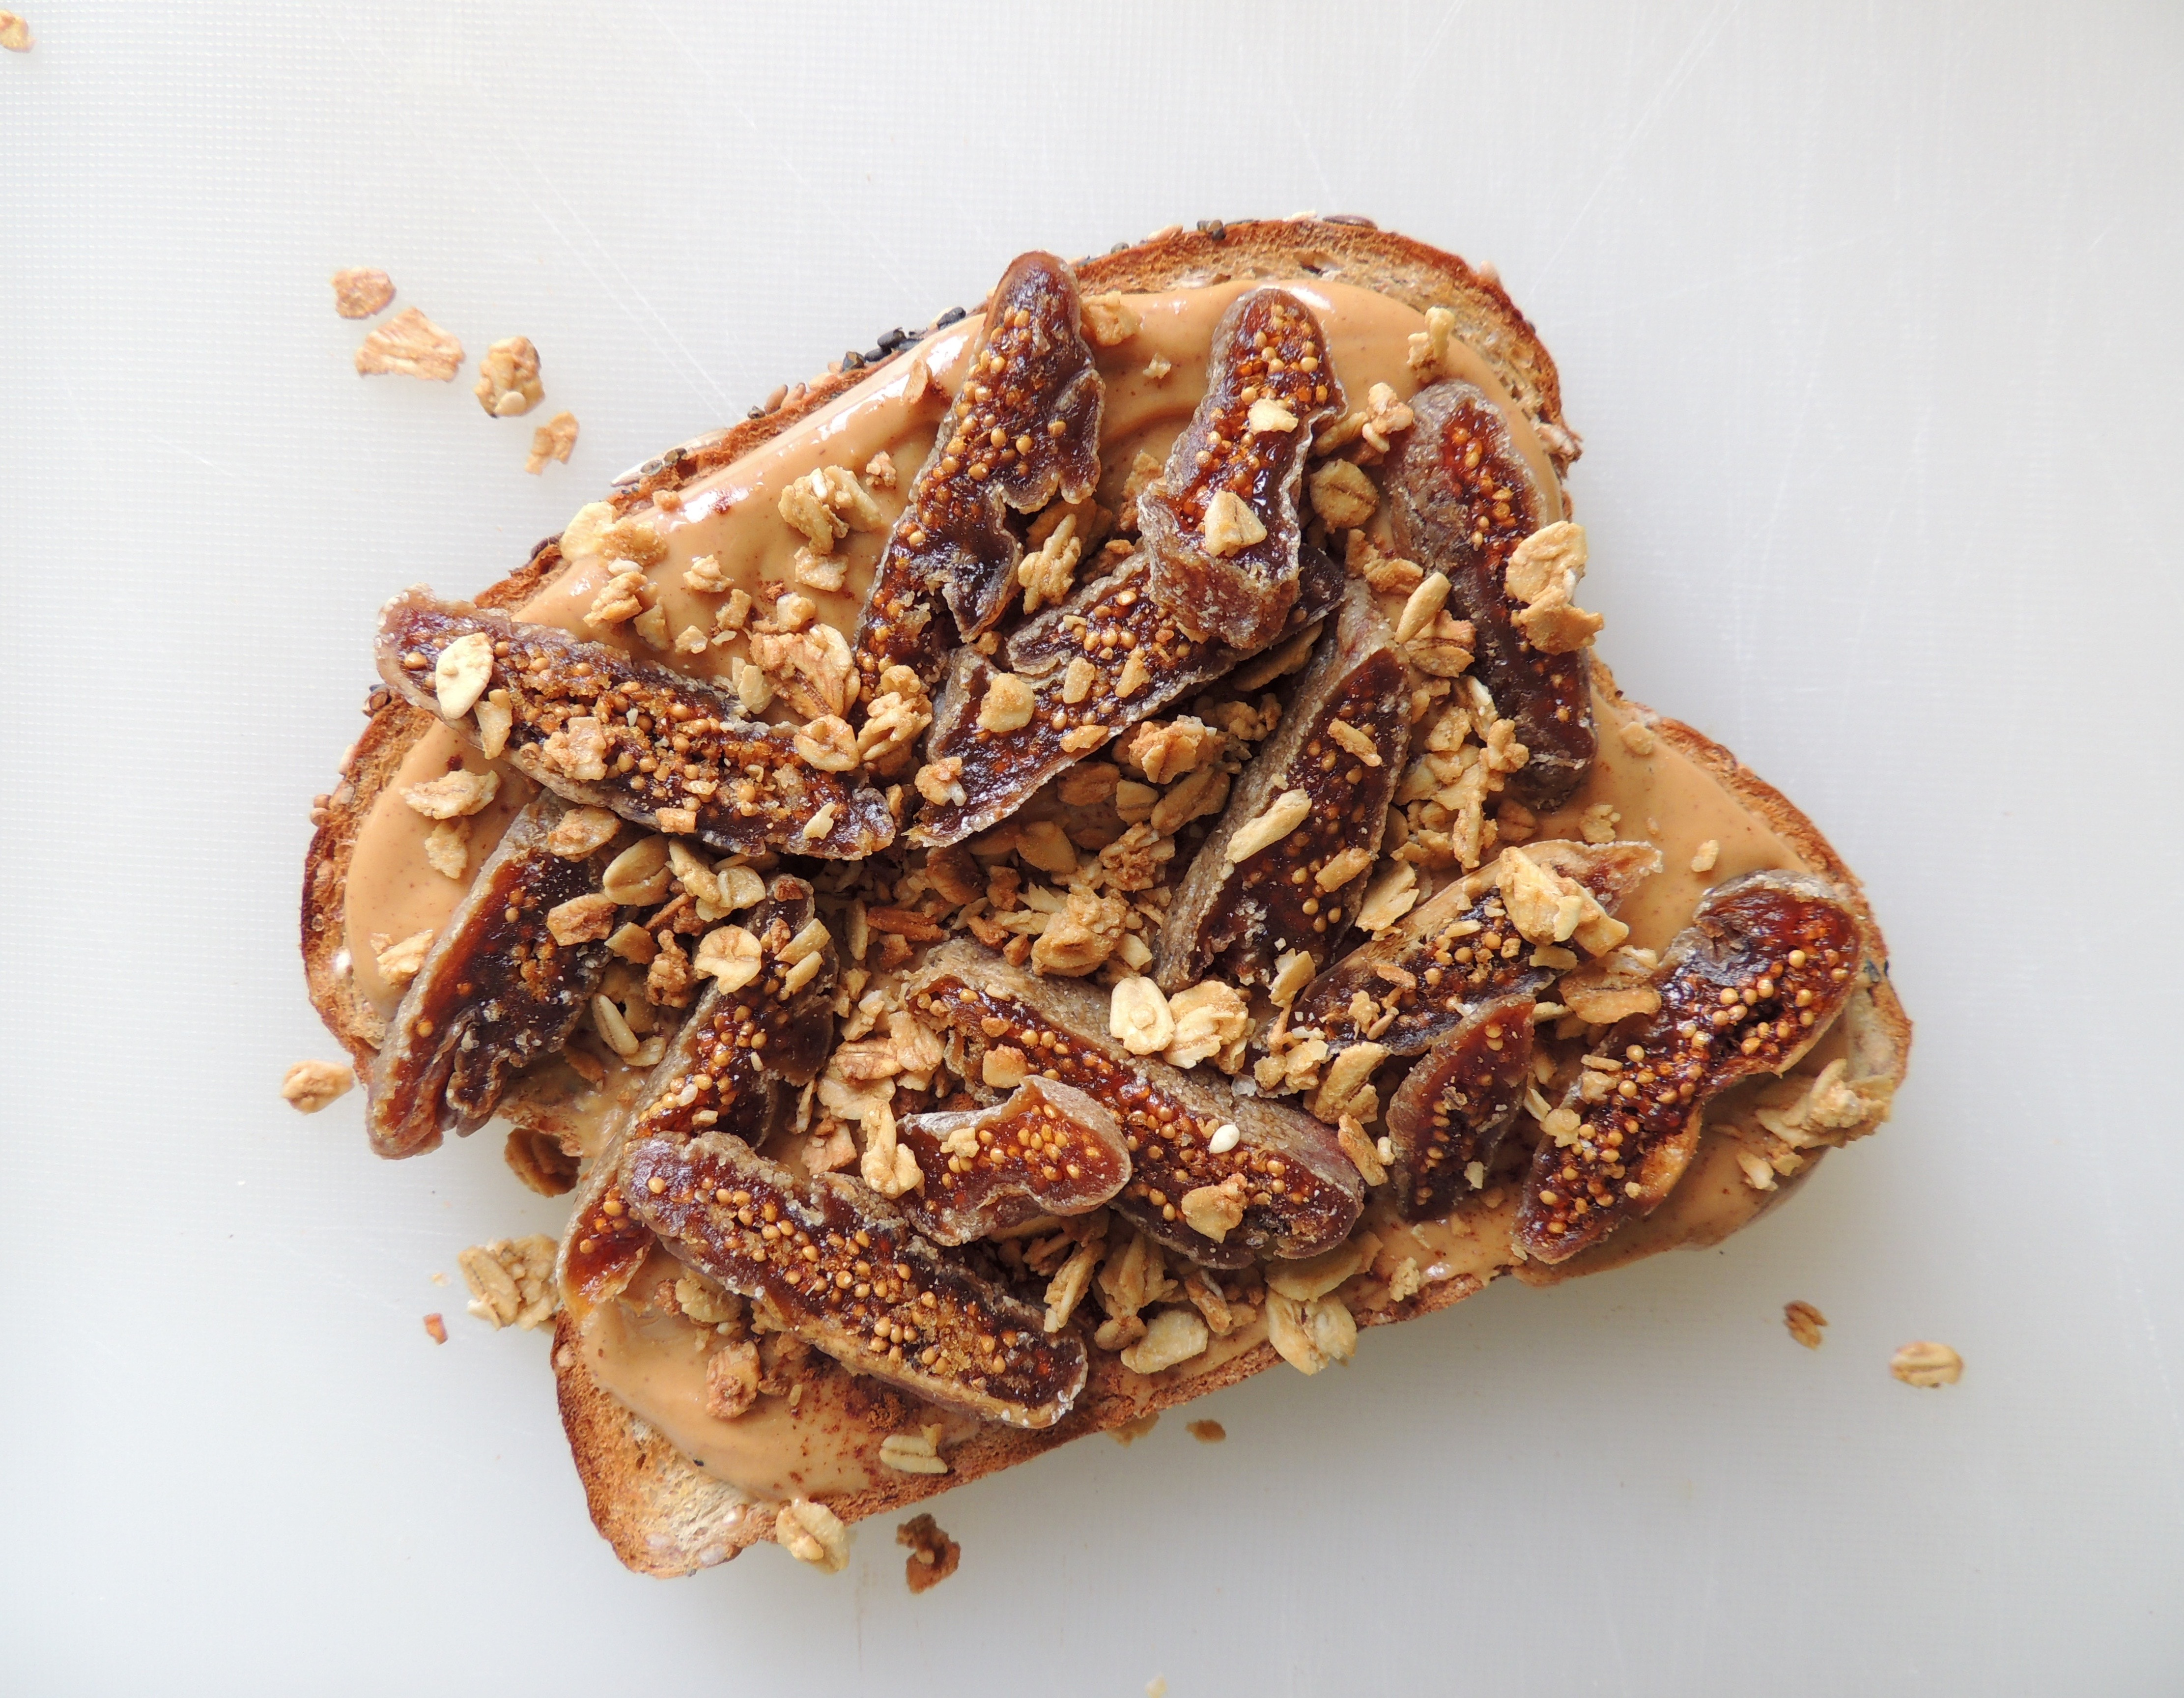 Peanut Butter & Fig Toast with Granola | Living Healthy in Seattle